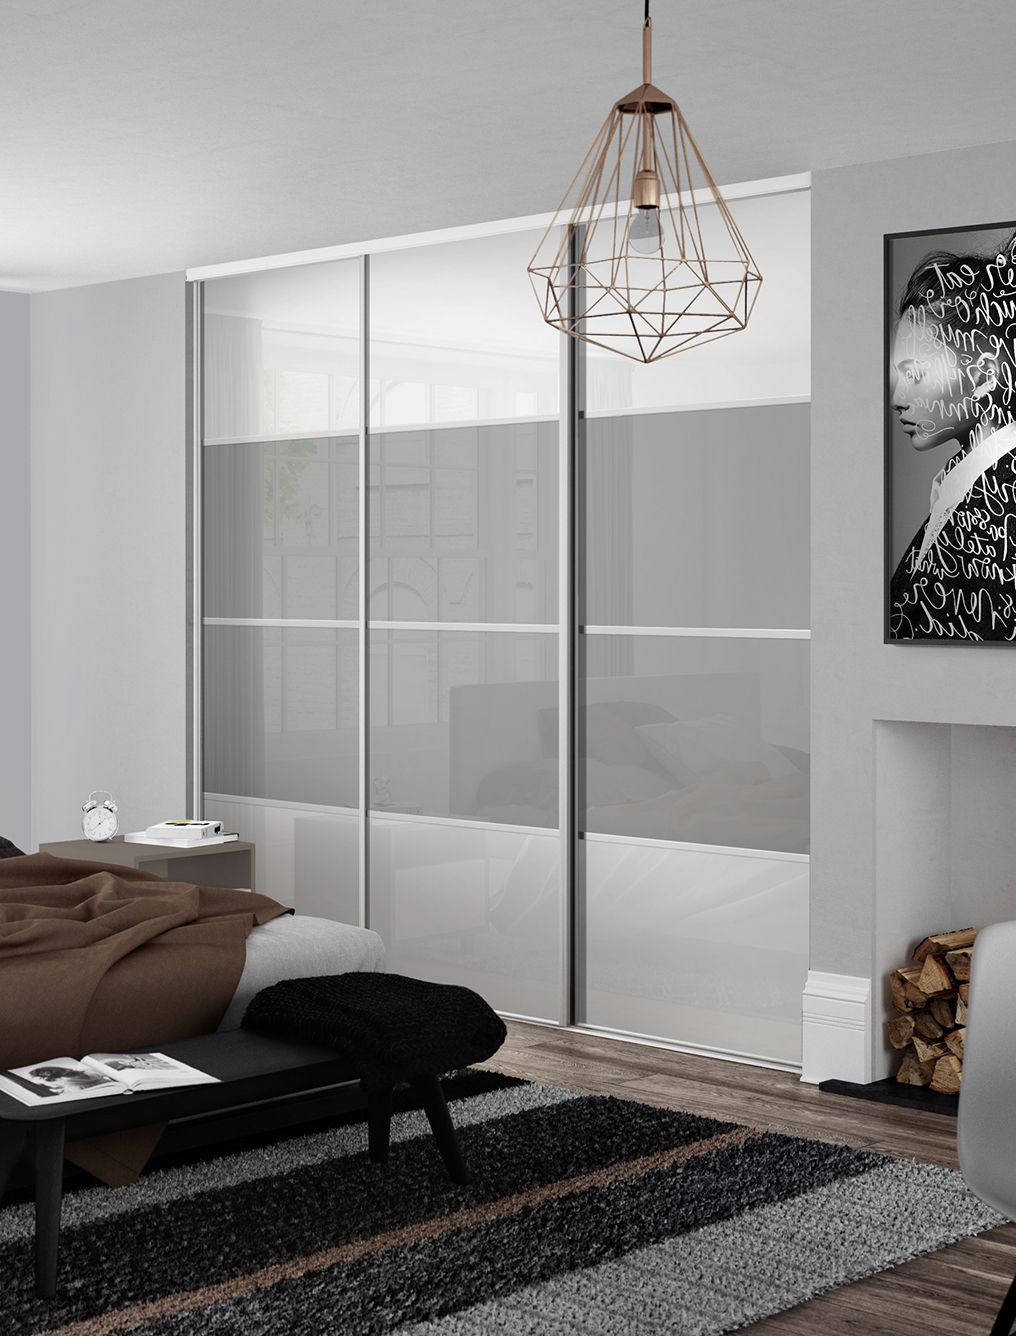 Classic 4 panel sliding wardrobe doors in Pure White and Light Grey glass with S…